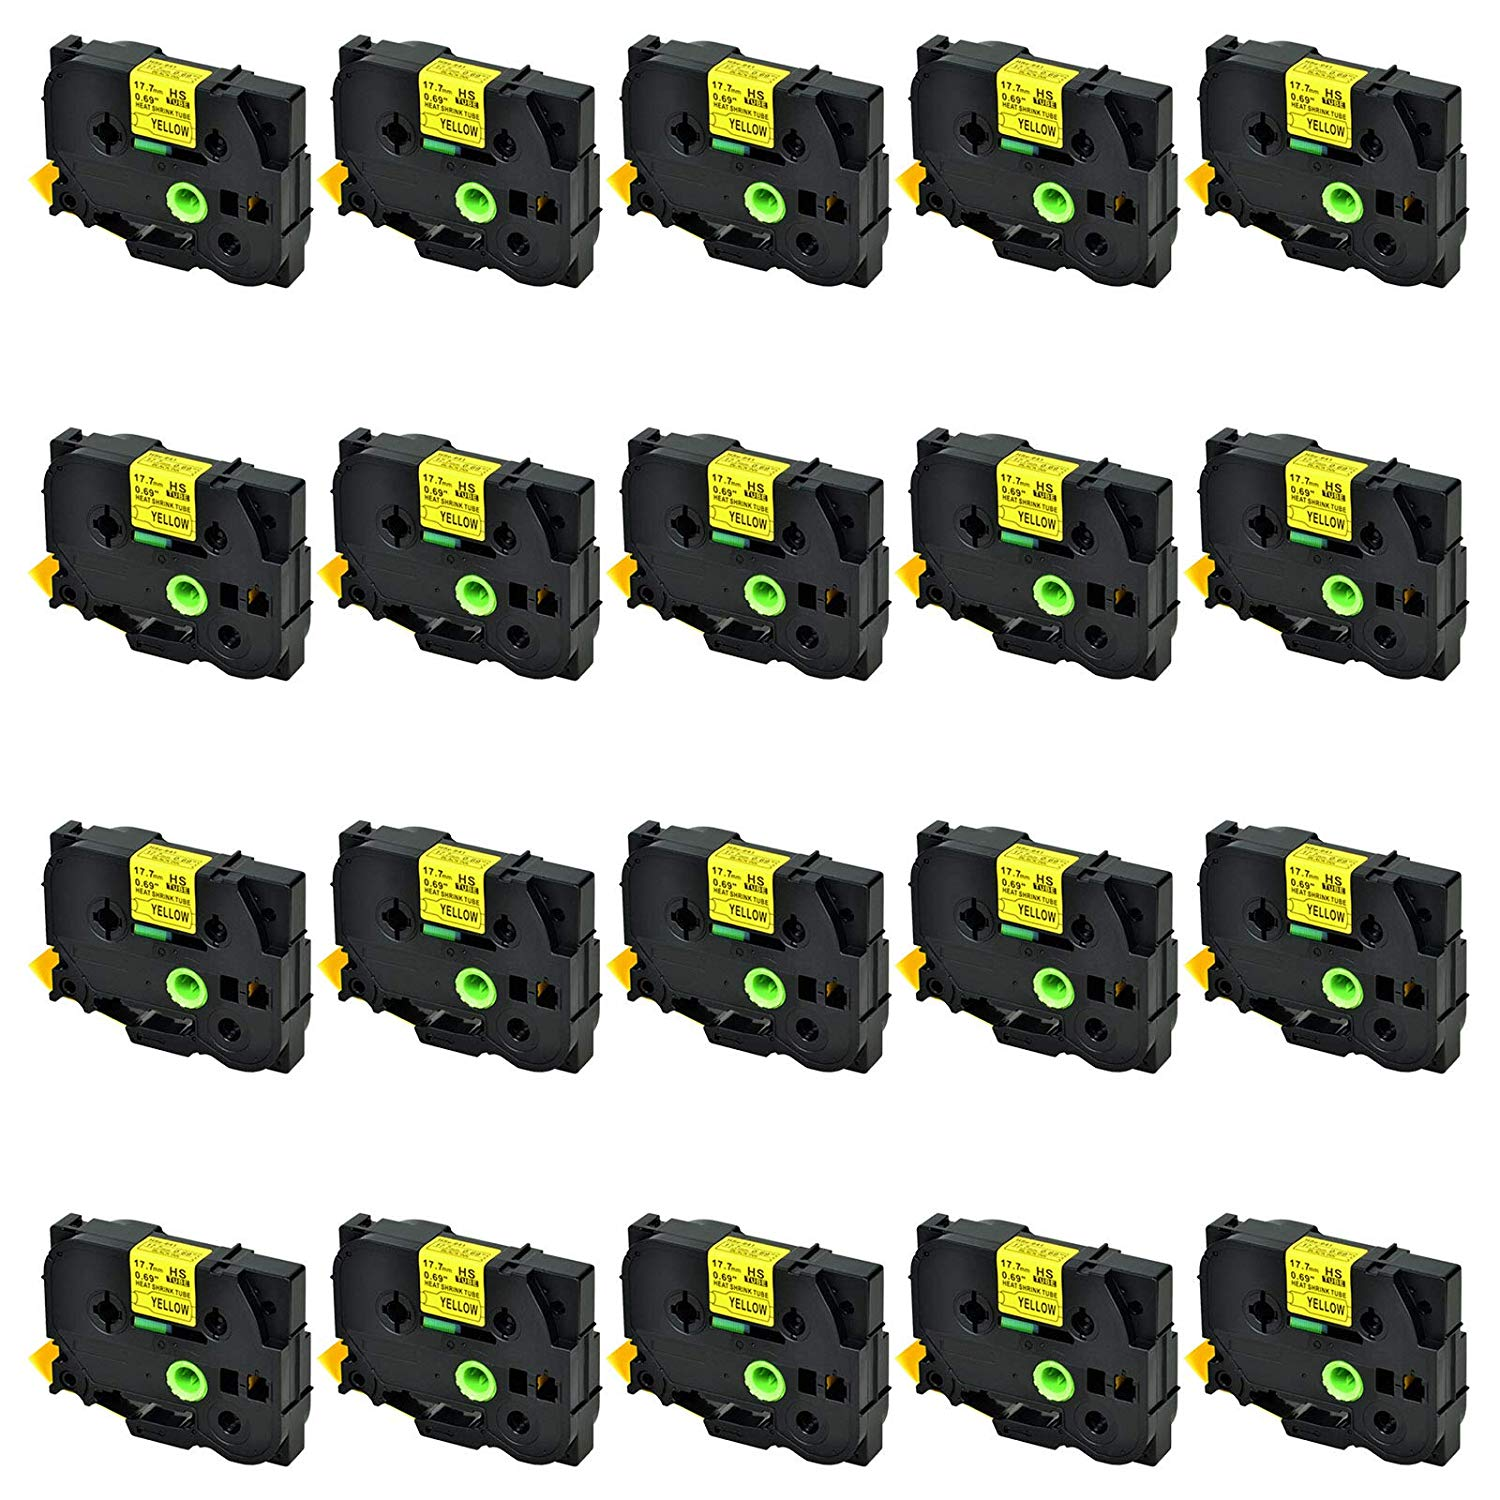 SuperInk 20 Pack Compatible for Brother HSe-641 HSe641 HS-641 HS641 Black on Yellow Heat Shrink Tube Label Tape use in Brother PT-E300 PT-E500 PT-P750WVP Printer (0.69''x 4.92ft, 17.7mm x 1.5m)